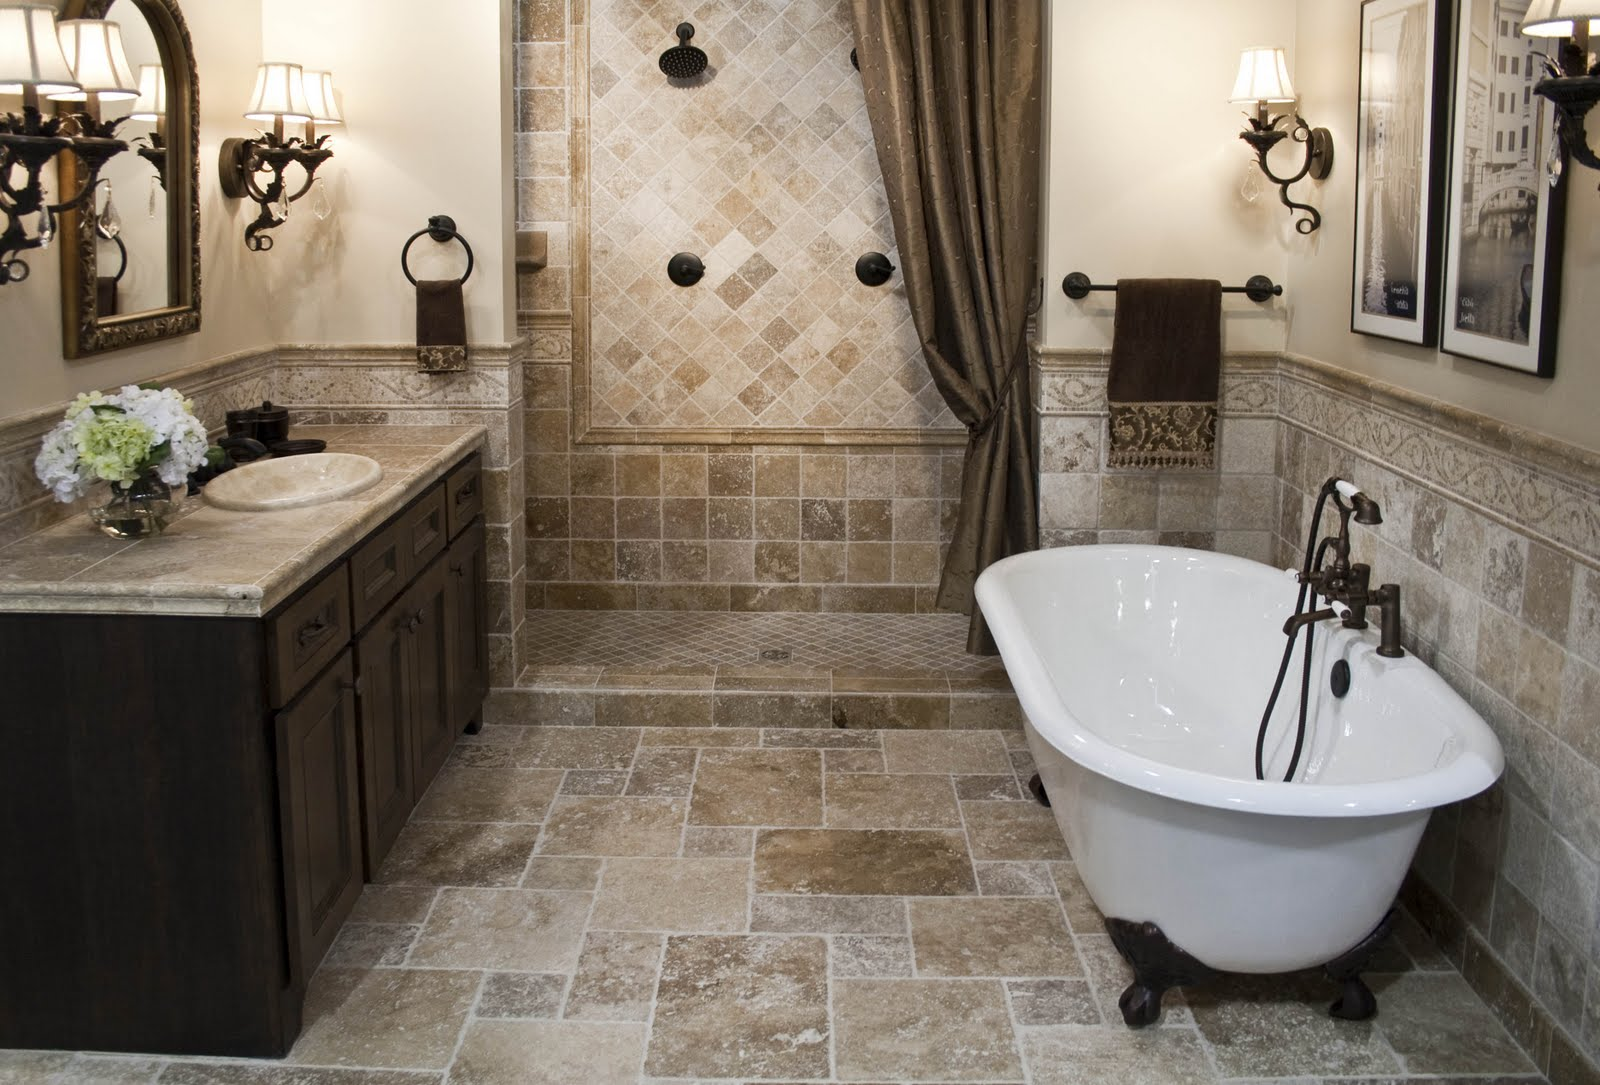 Tips For DIY Bathroom Renovations On A Budget - Classic bathroom renovations